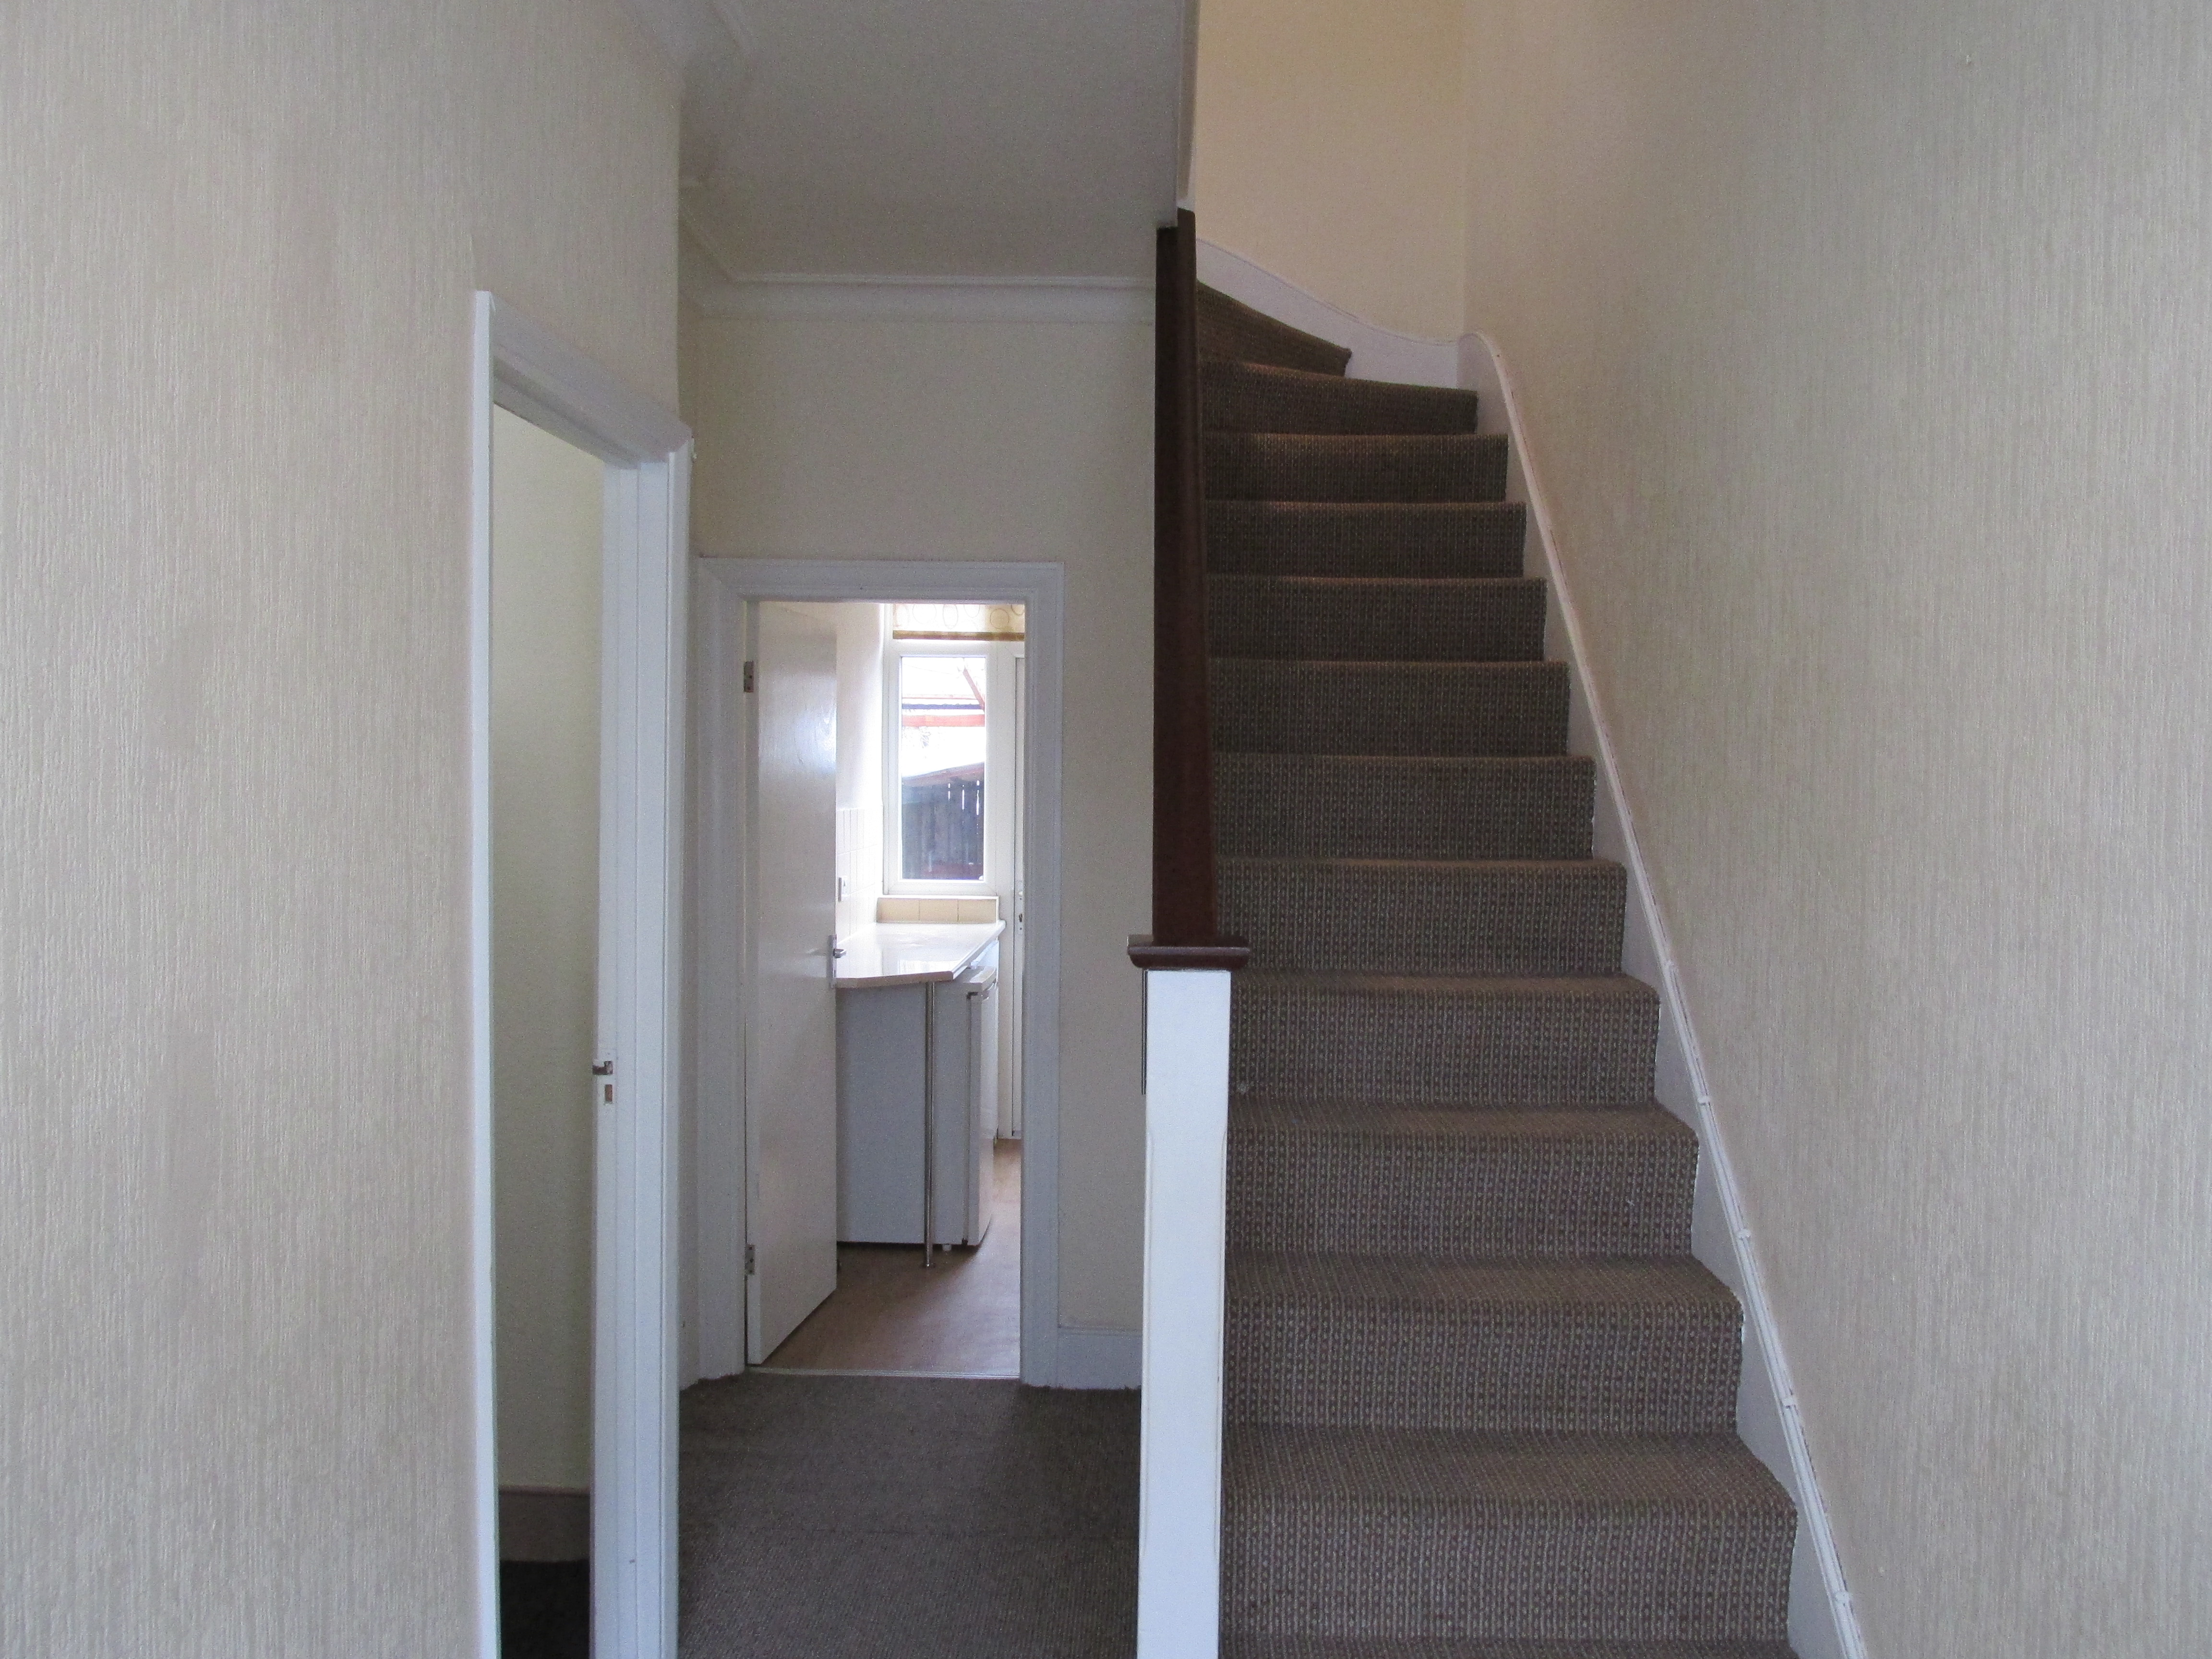 Spacious 3/4 bedroom terraced house to let Tottenham N17. DSS considered.